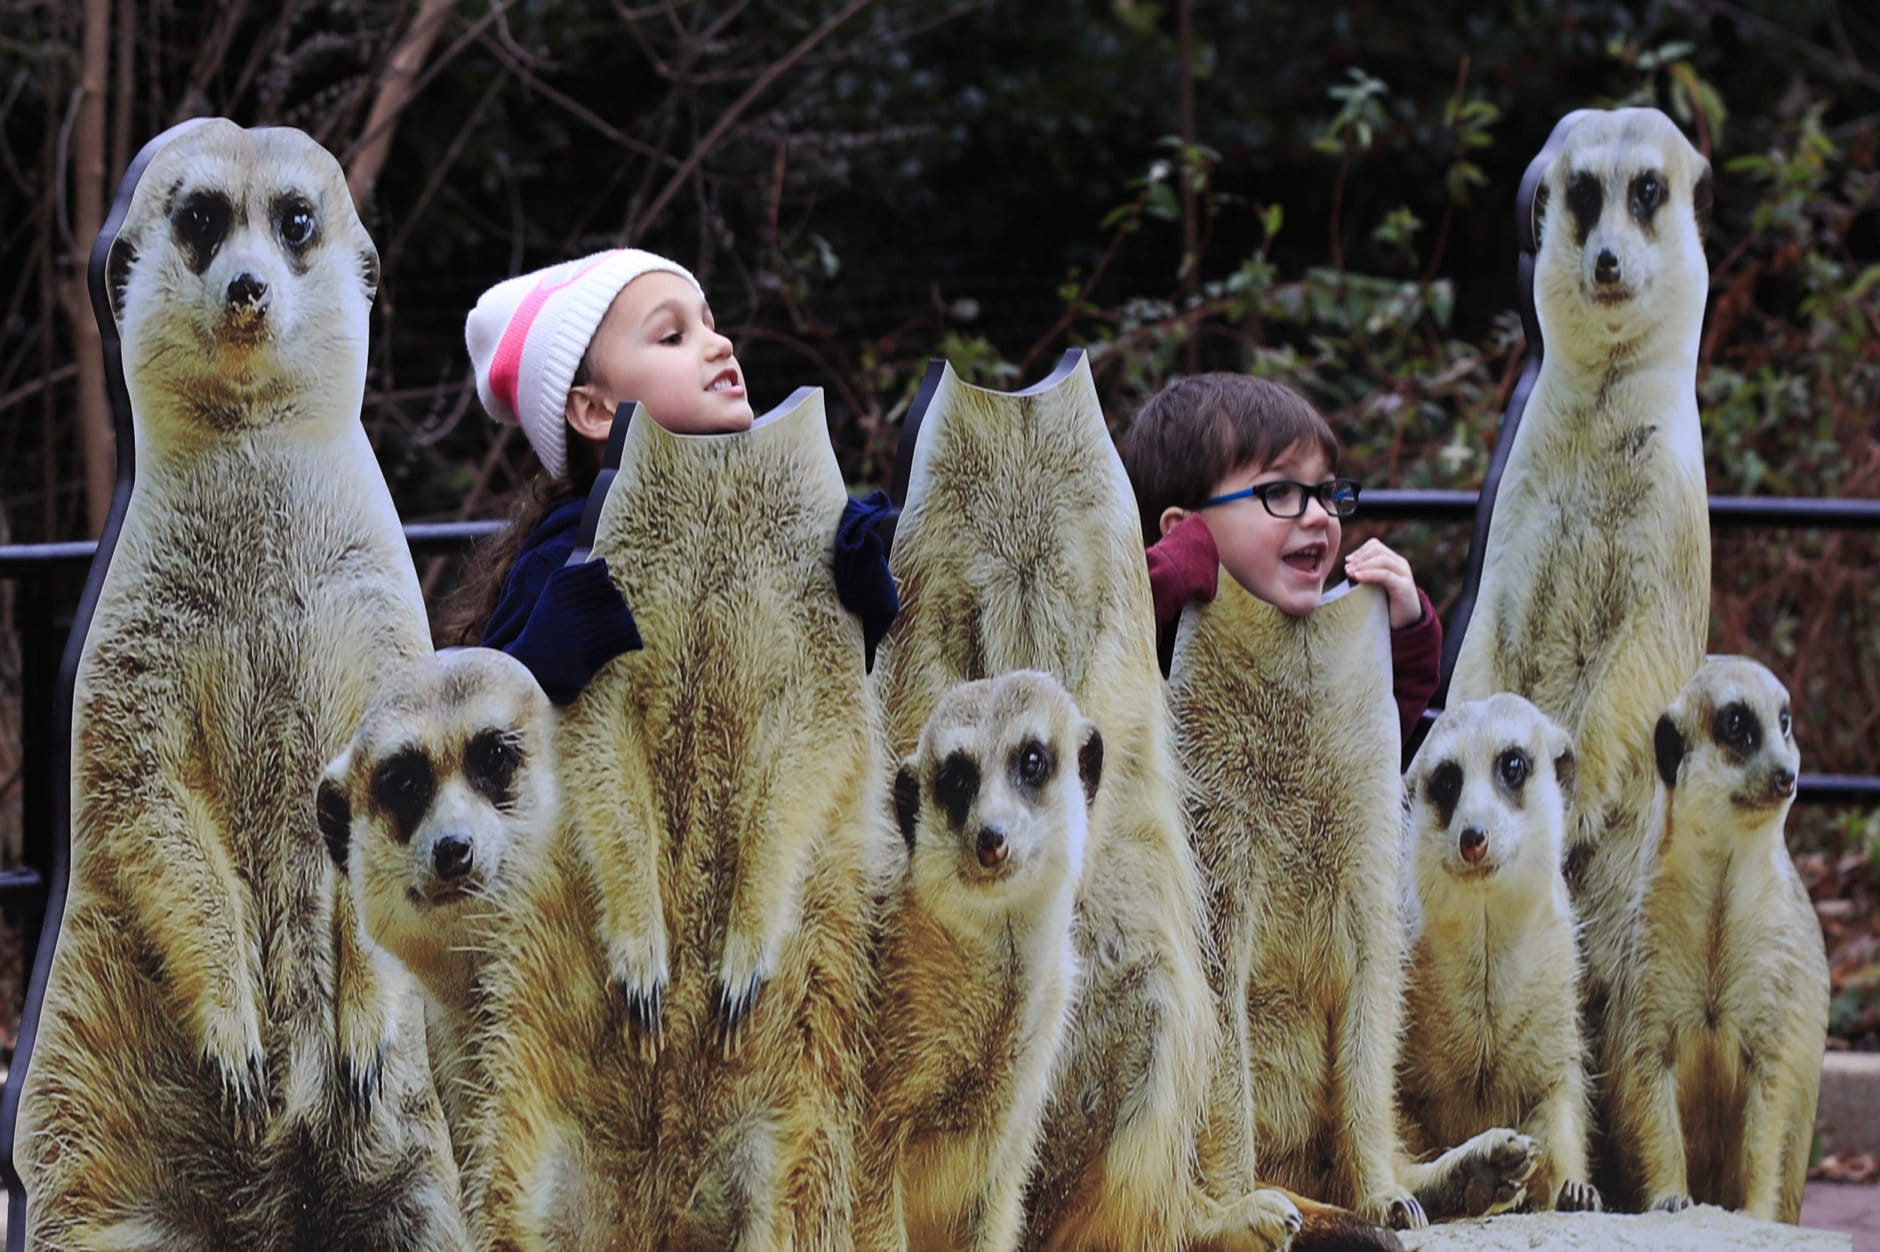 Maila and her brother Sammy Farag, play with meerkat cutout boards at the Smithsonian's National Zoo in Washington, Monday, Dec. 31, 2018. In the event of a prolonged government shutdown and Smithsonian's National Zoo closes, the zoo keepers will be working unpaid. (AP Photo/Manuel Balce Ceneta)